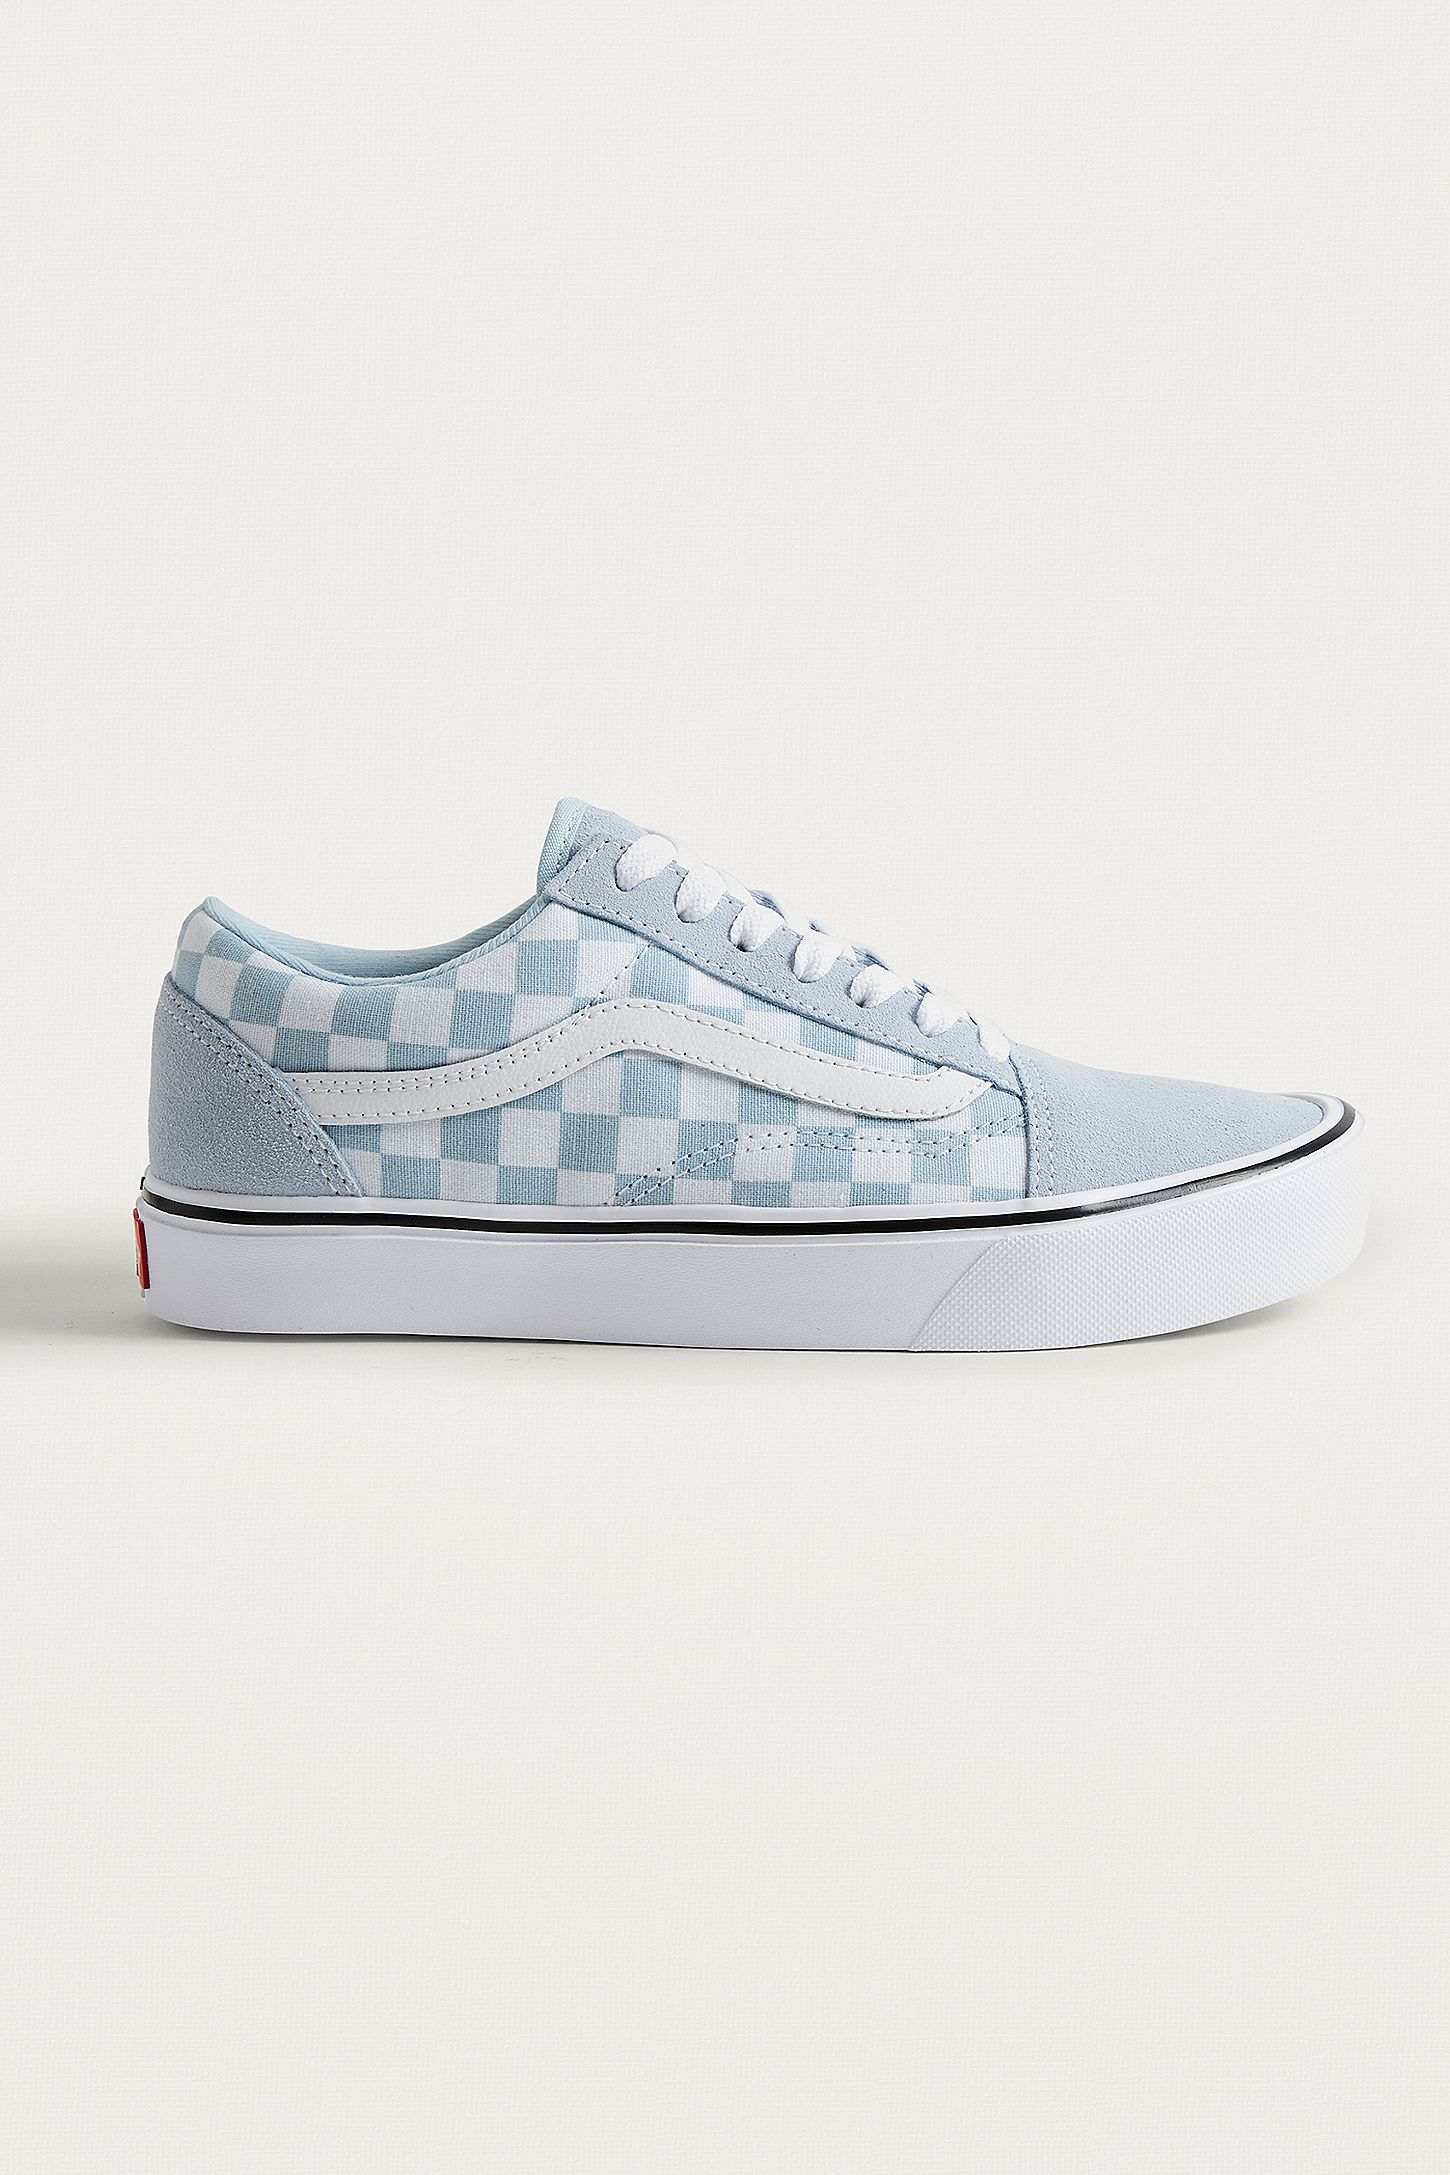 129e4408d1 Vans Old Skool Light Blue Checkerboard Trainers